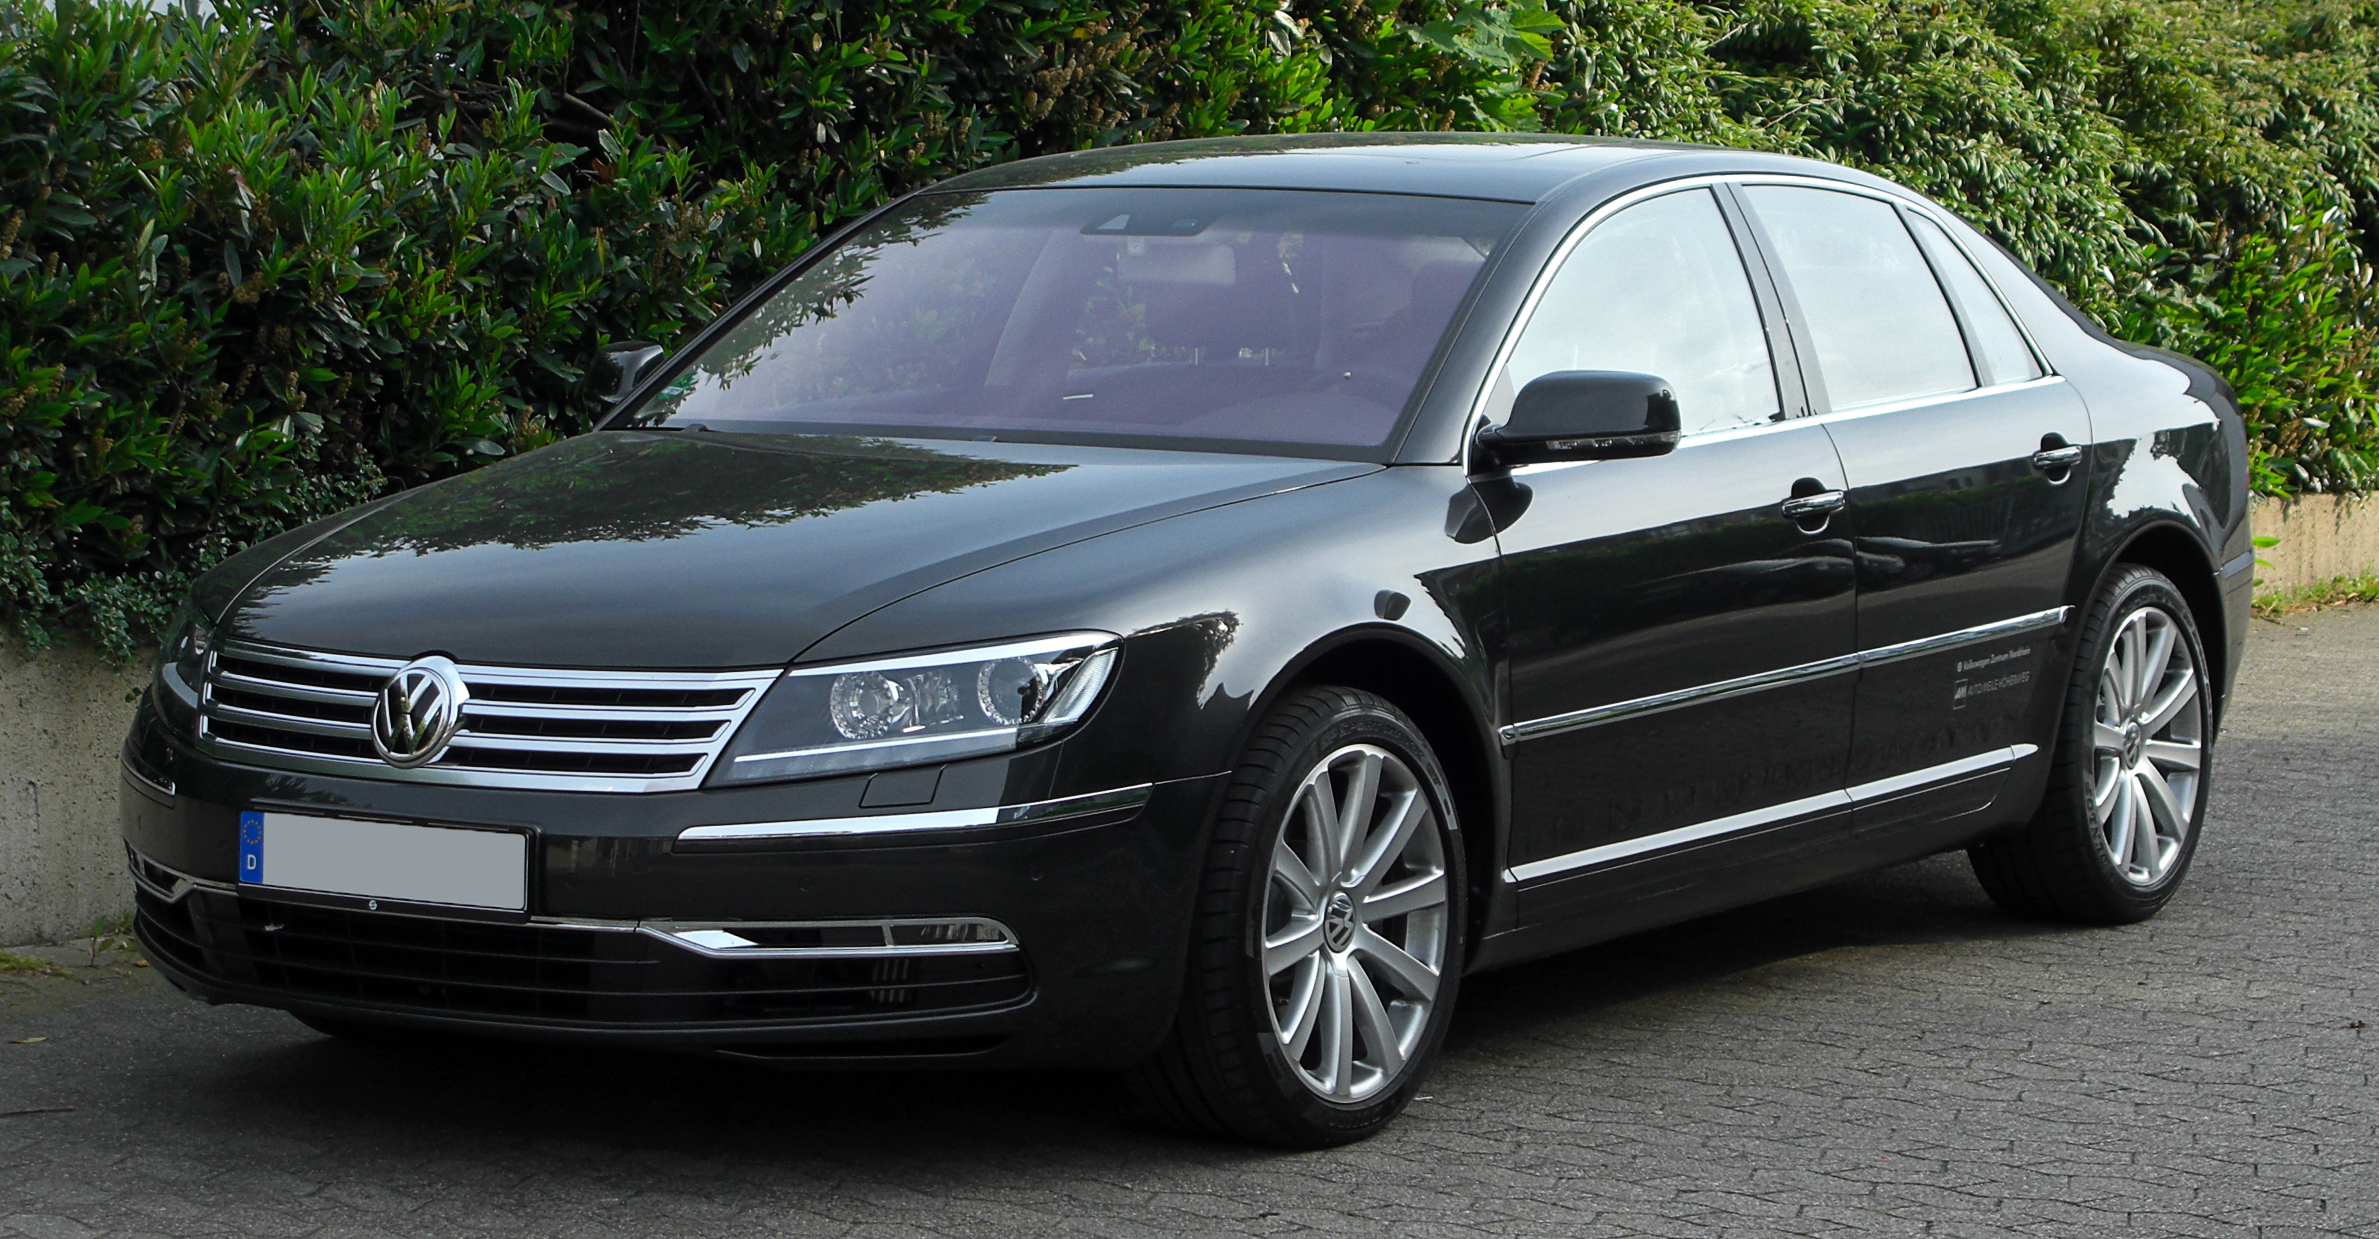 Volkswagen Phaeton W12 A Luxury Car For The Lucky Emotoauto Com